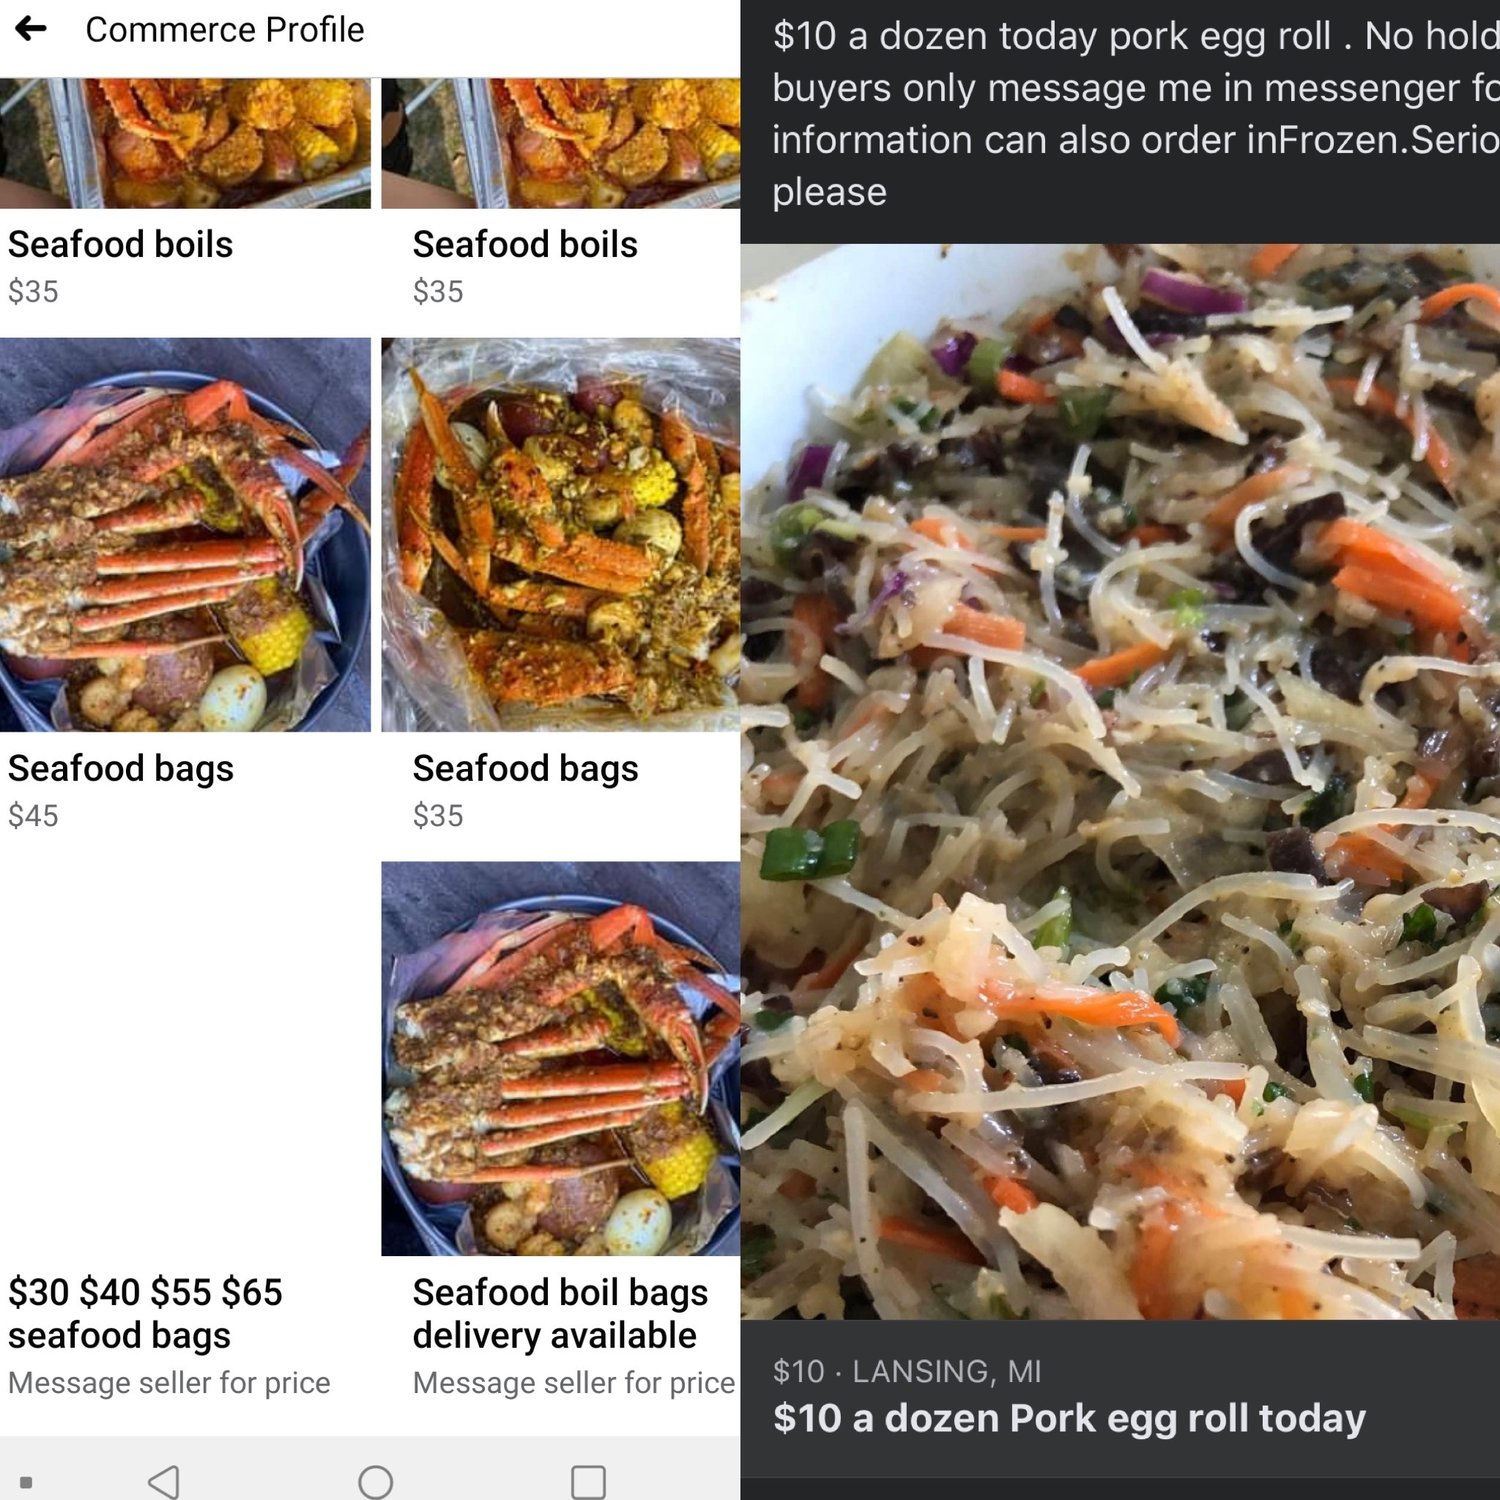 Online Facebook advertisements for homemade carryout are a common sight in Greater Lansing.